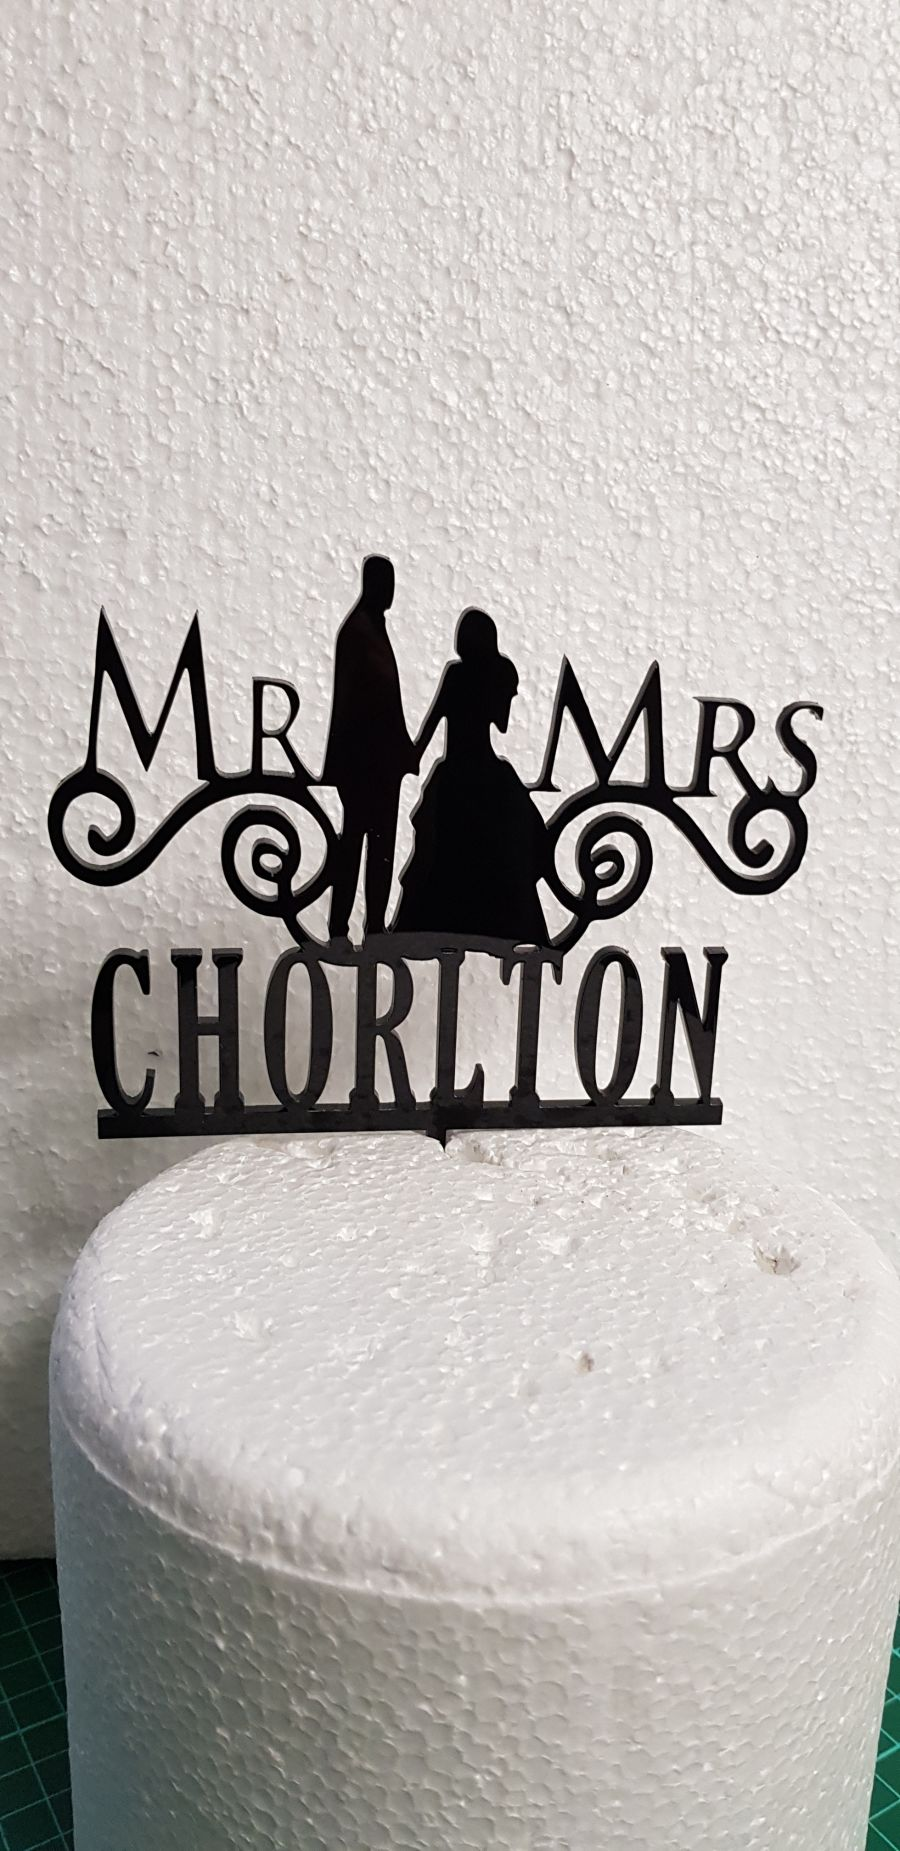 Mr & Mrs swirly wedding with name at side acrylic cake topper